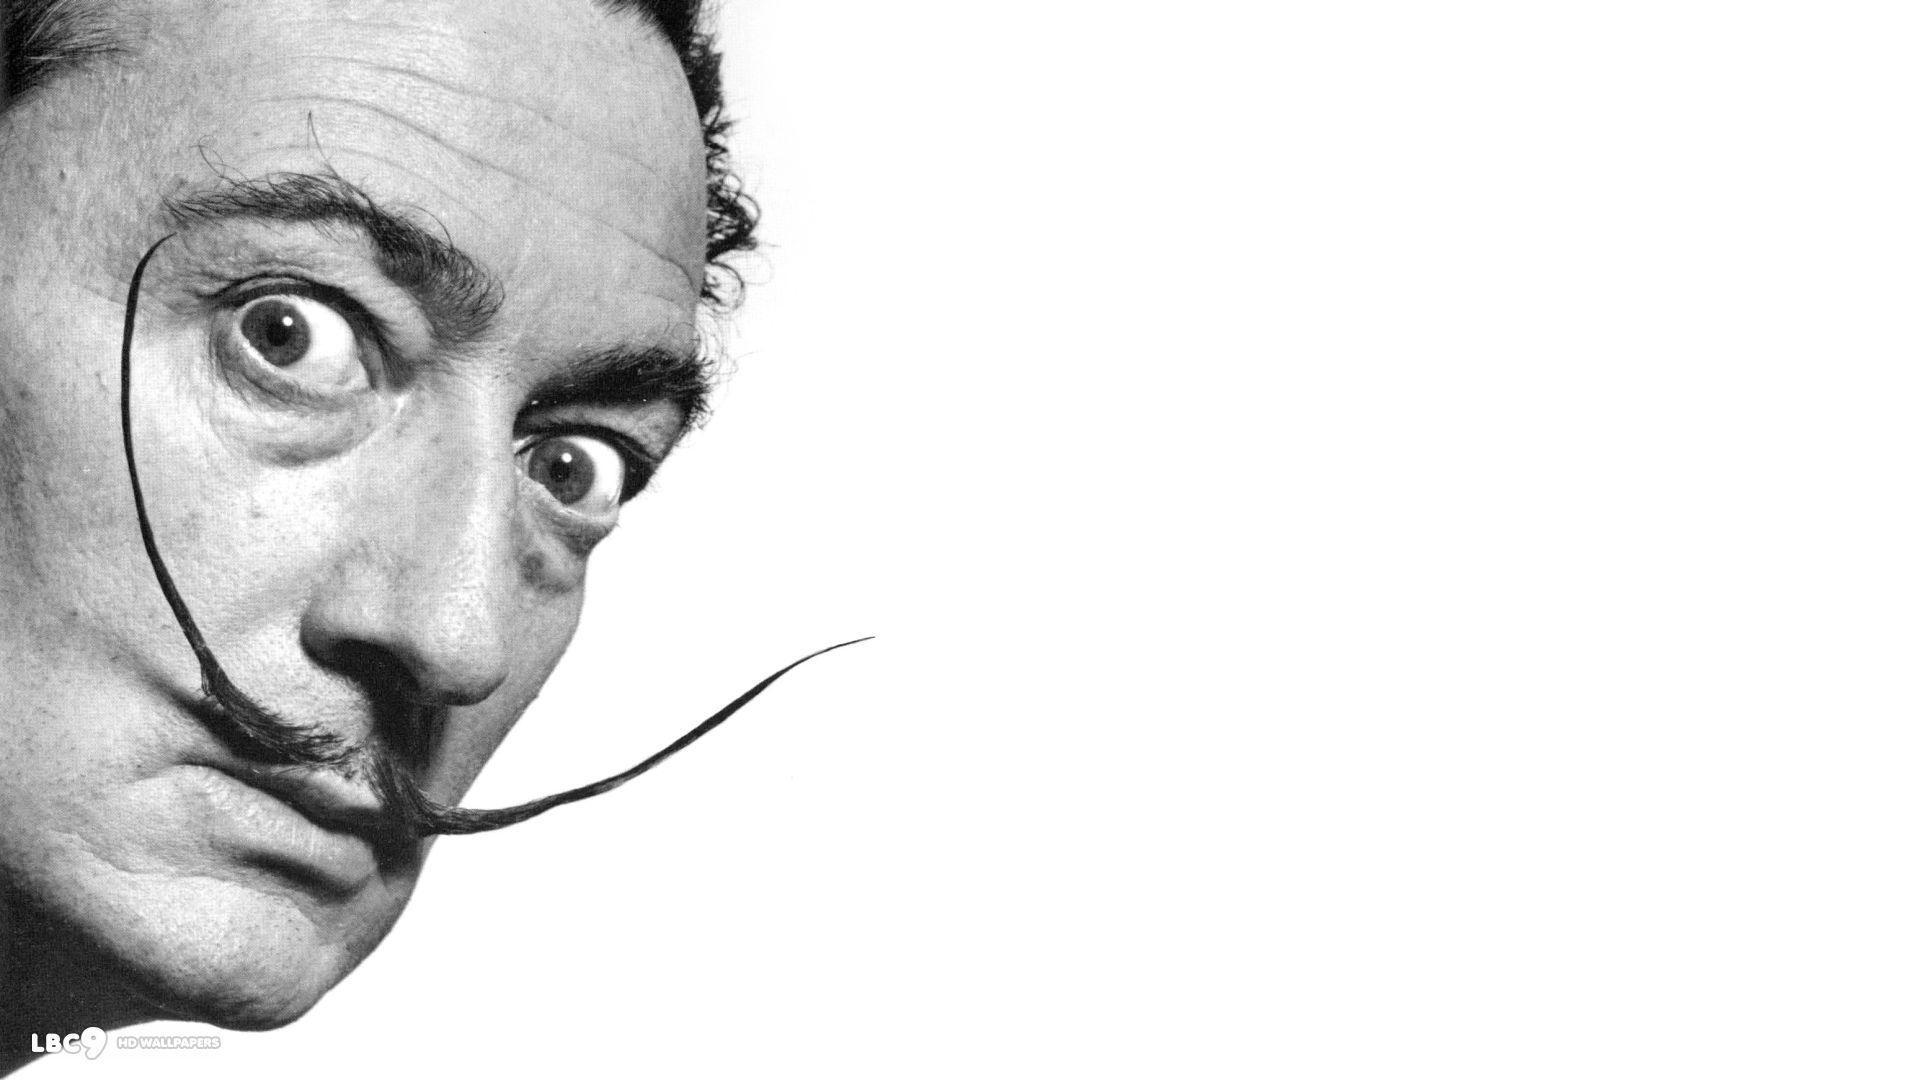 salvador dali wallpaper 28/38 | paintings hd backgrounds